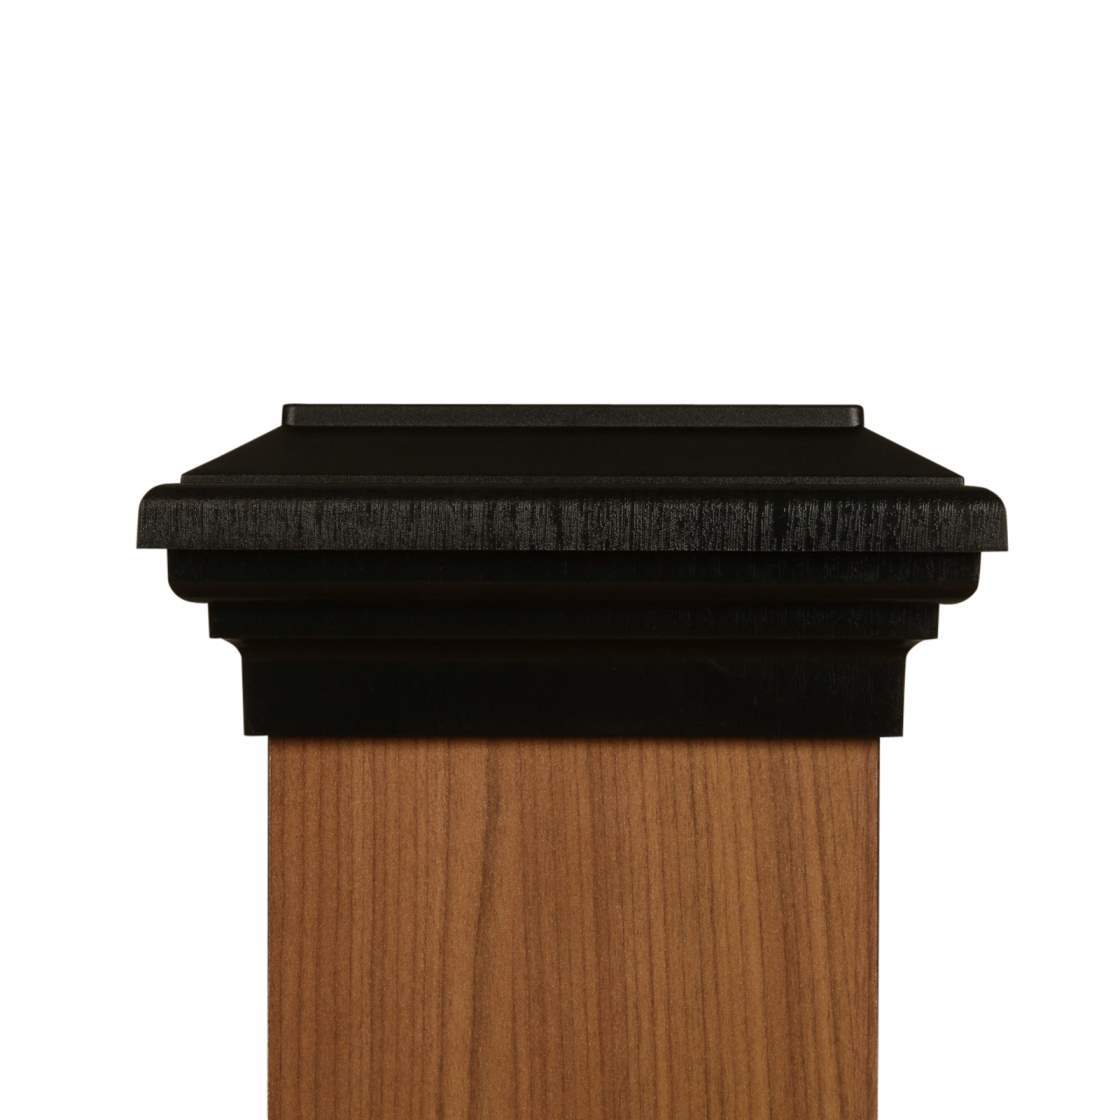 d4dee82711a75 6x6 Post Cap │ Black Flat Top │Fence Post Caps│Deck Post Caps ...